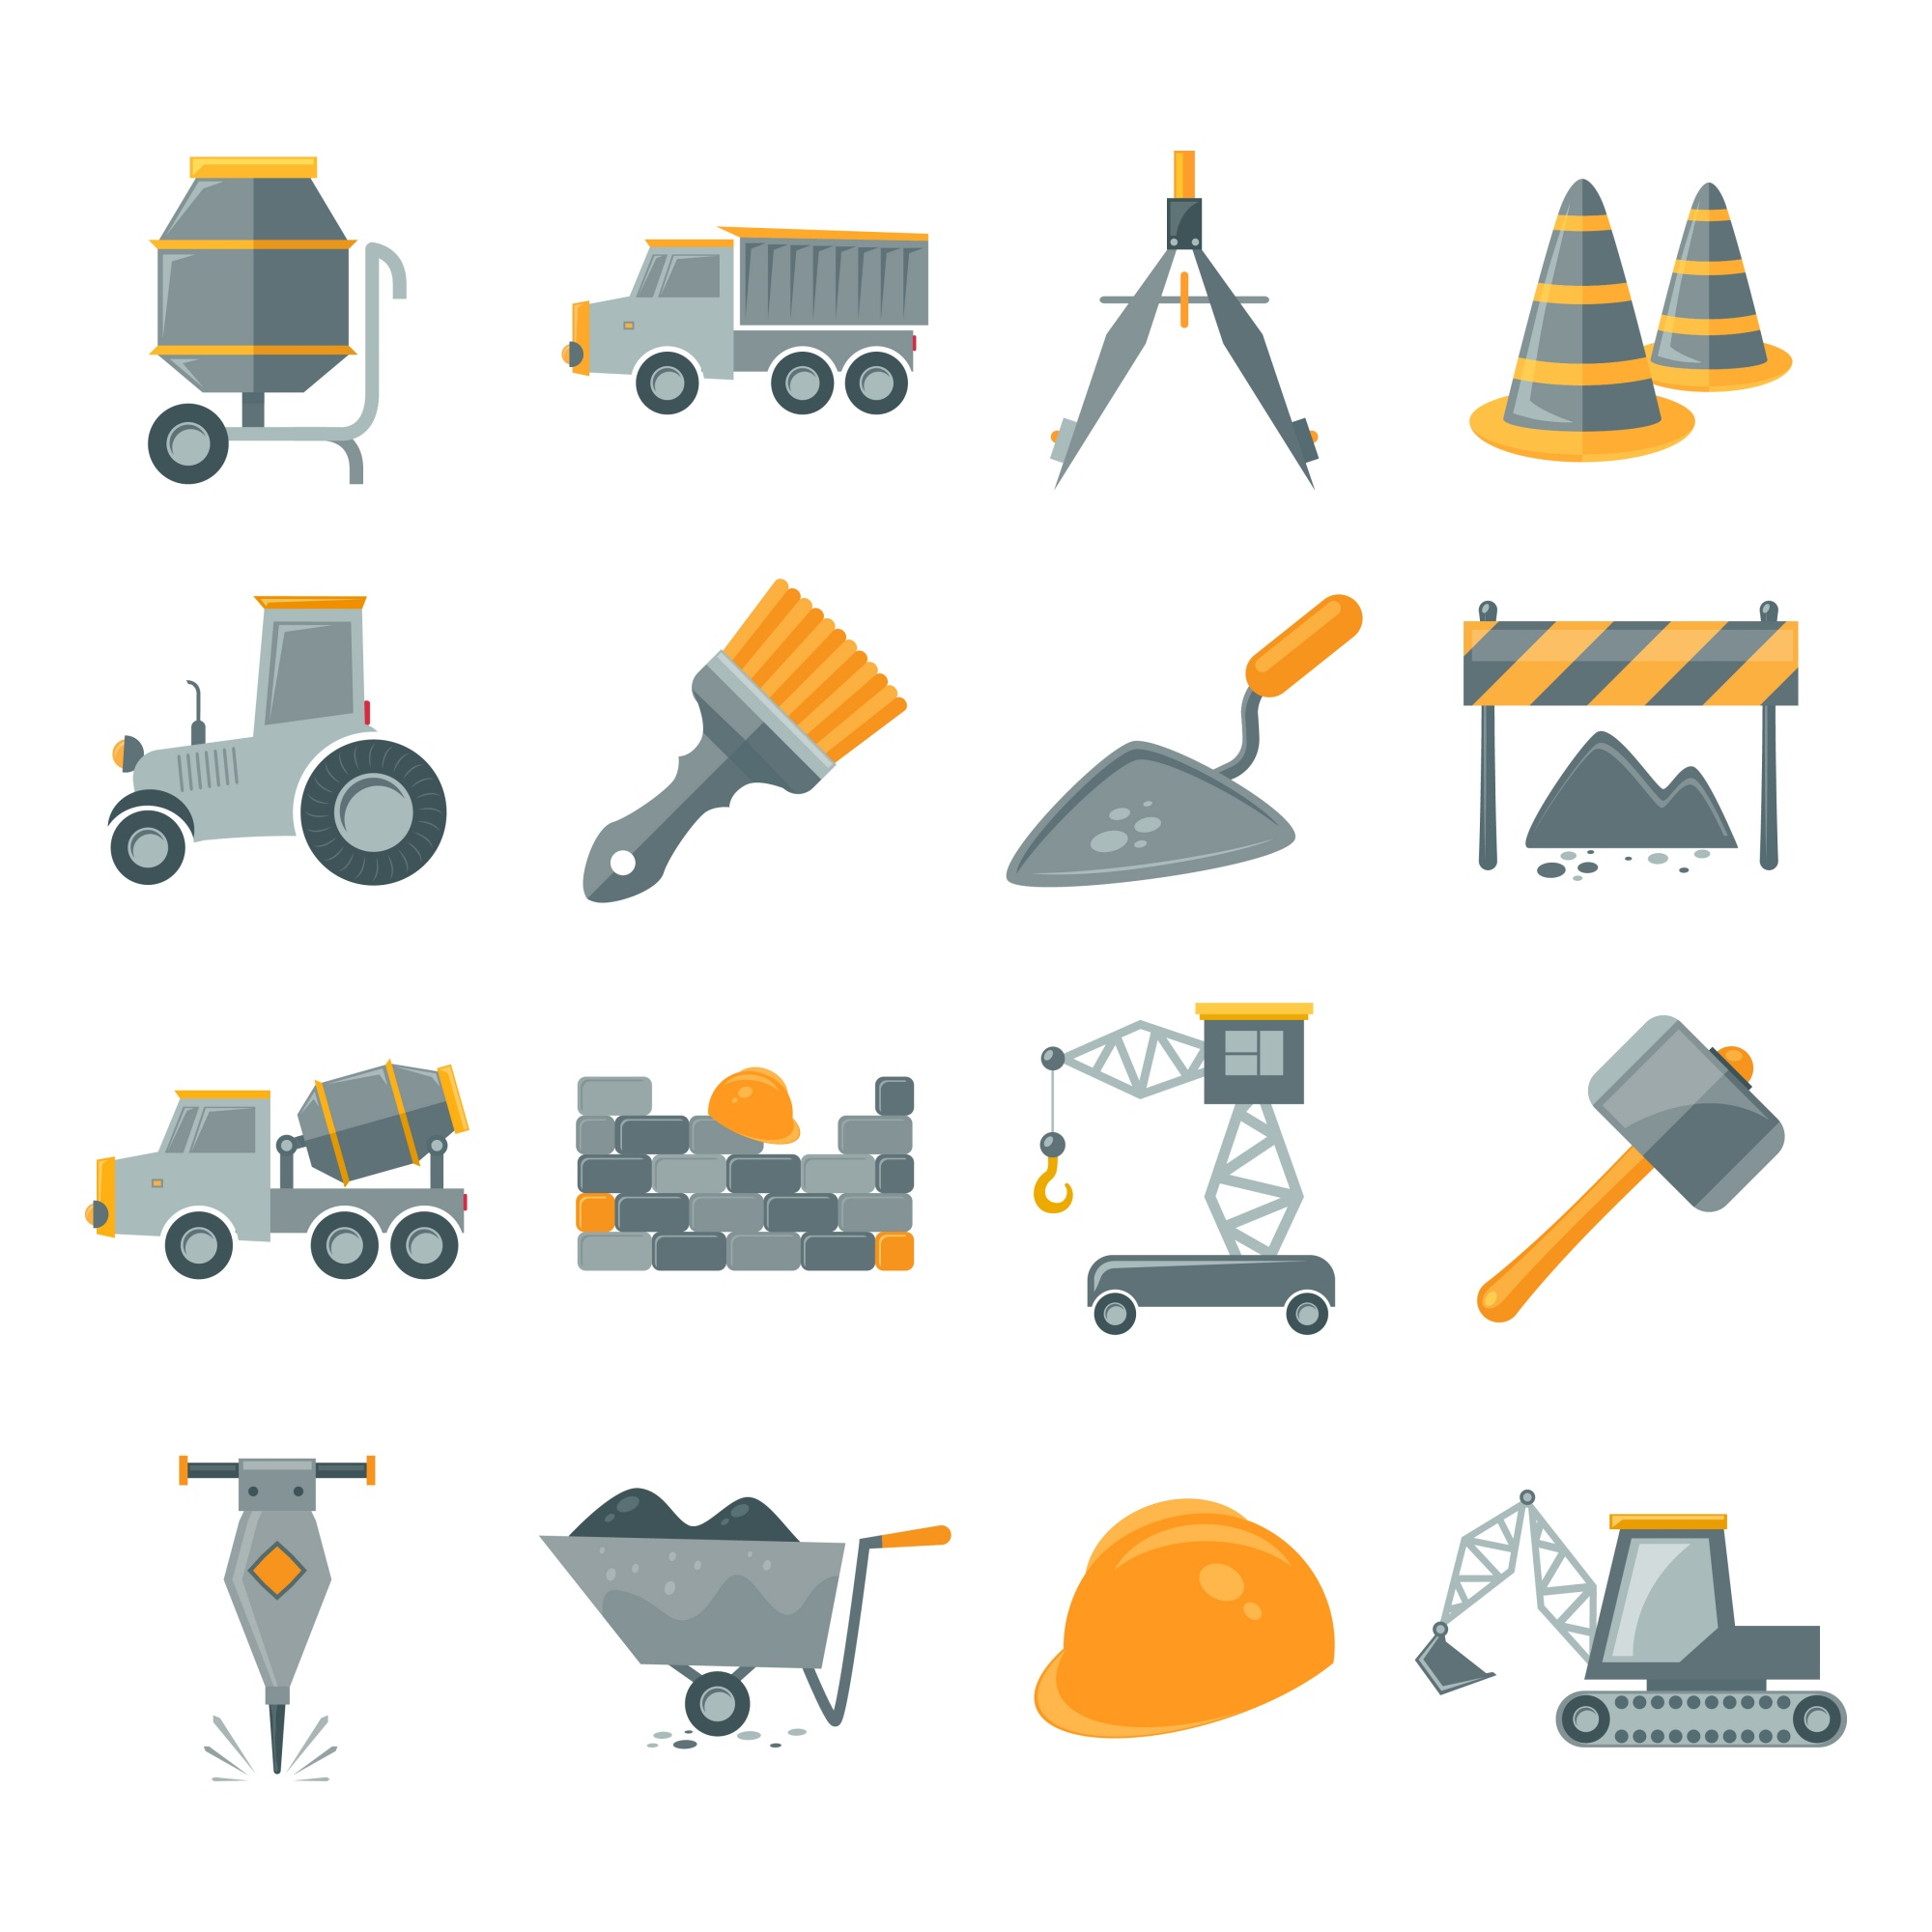 Assortment of construction items